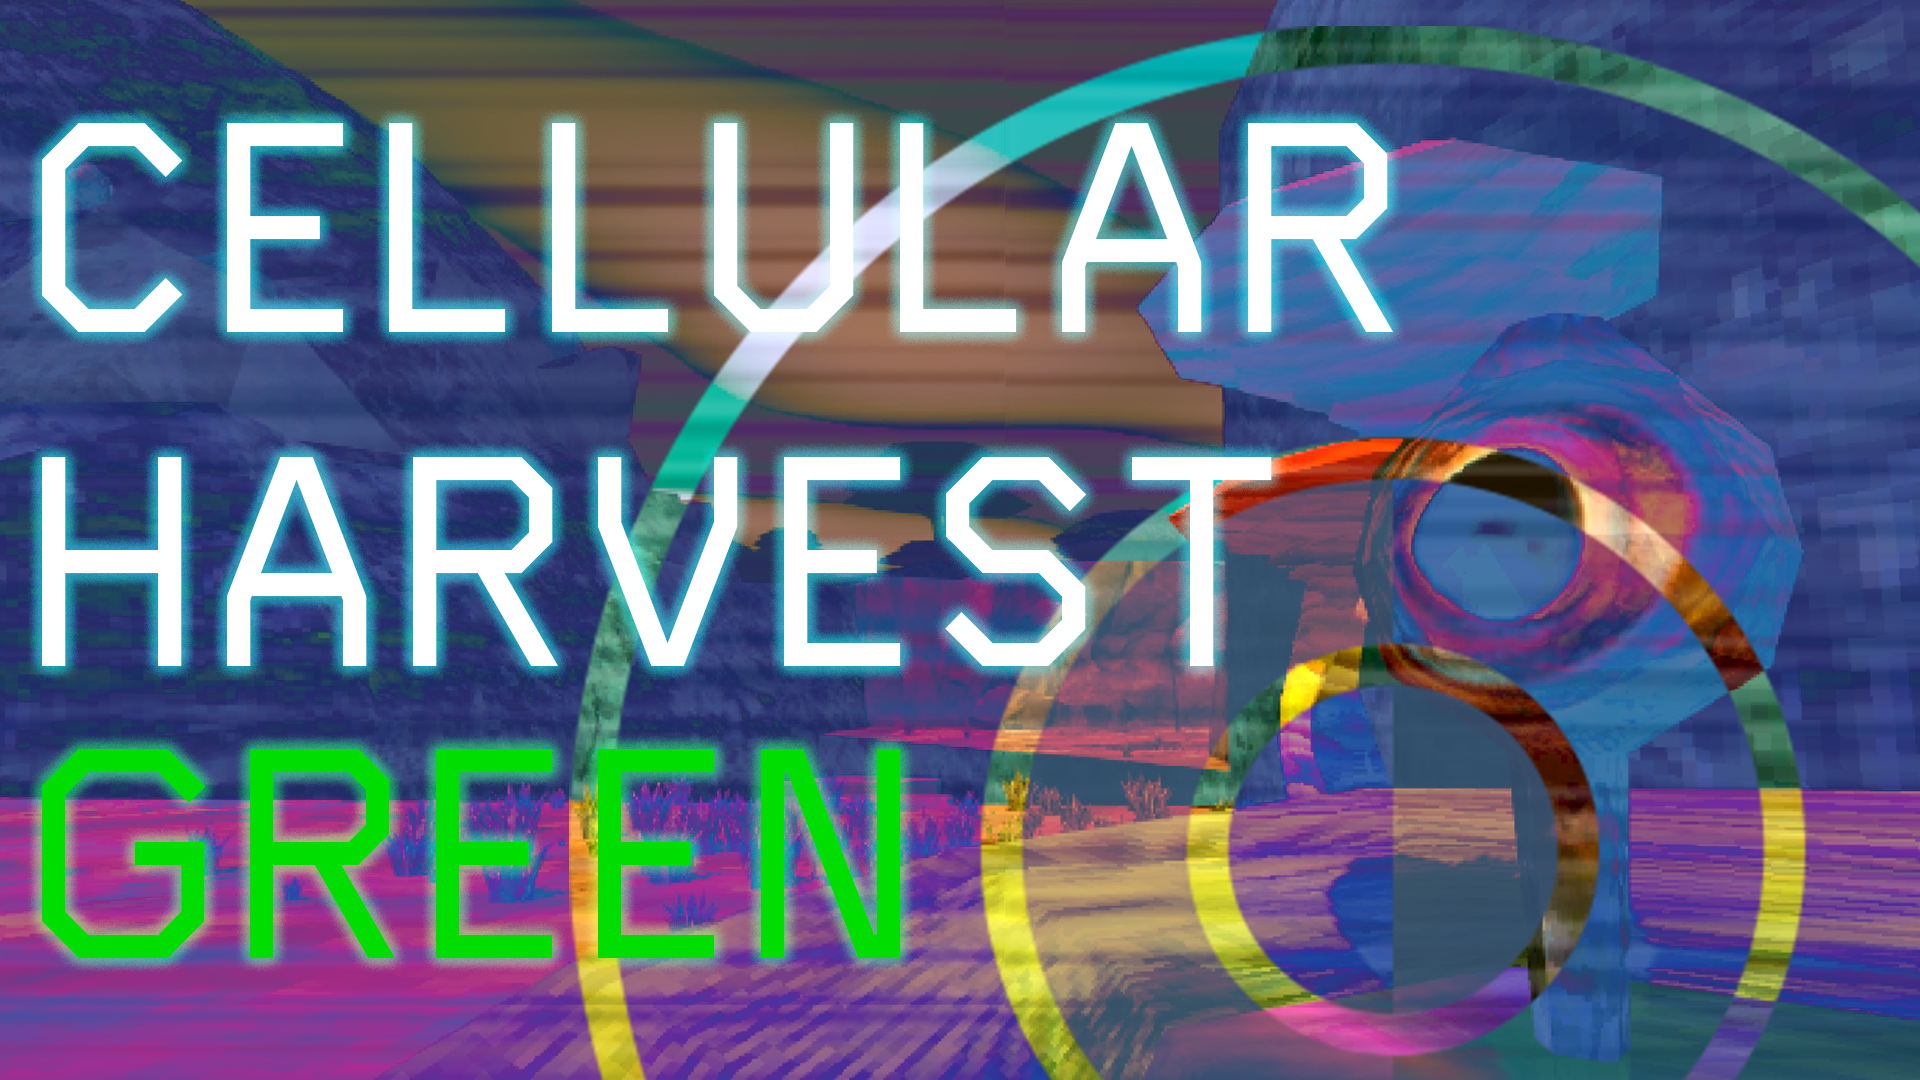 Cellular Harvest: Green